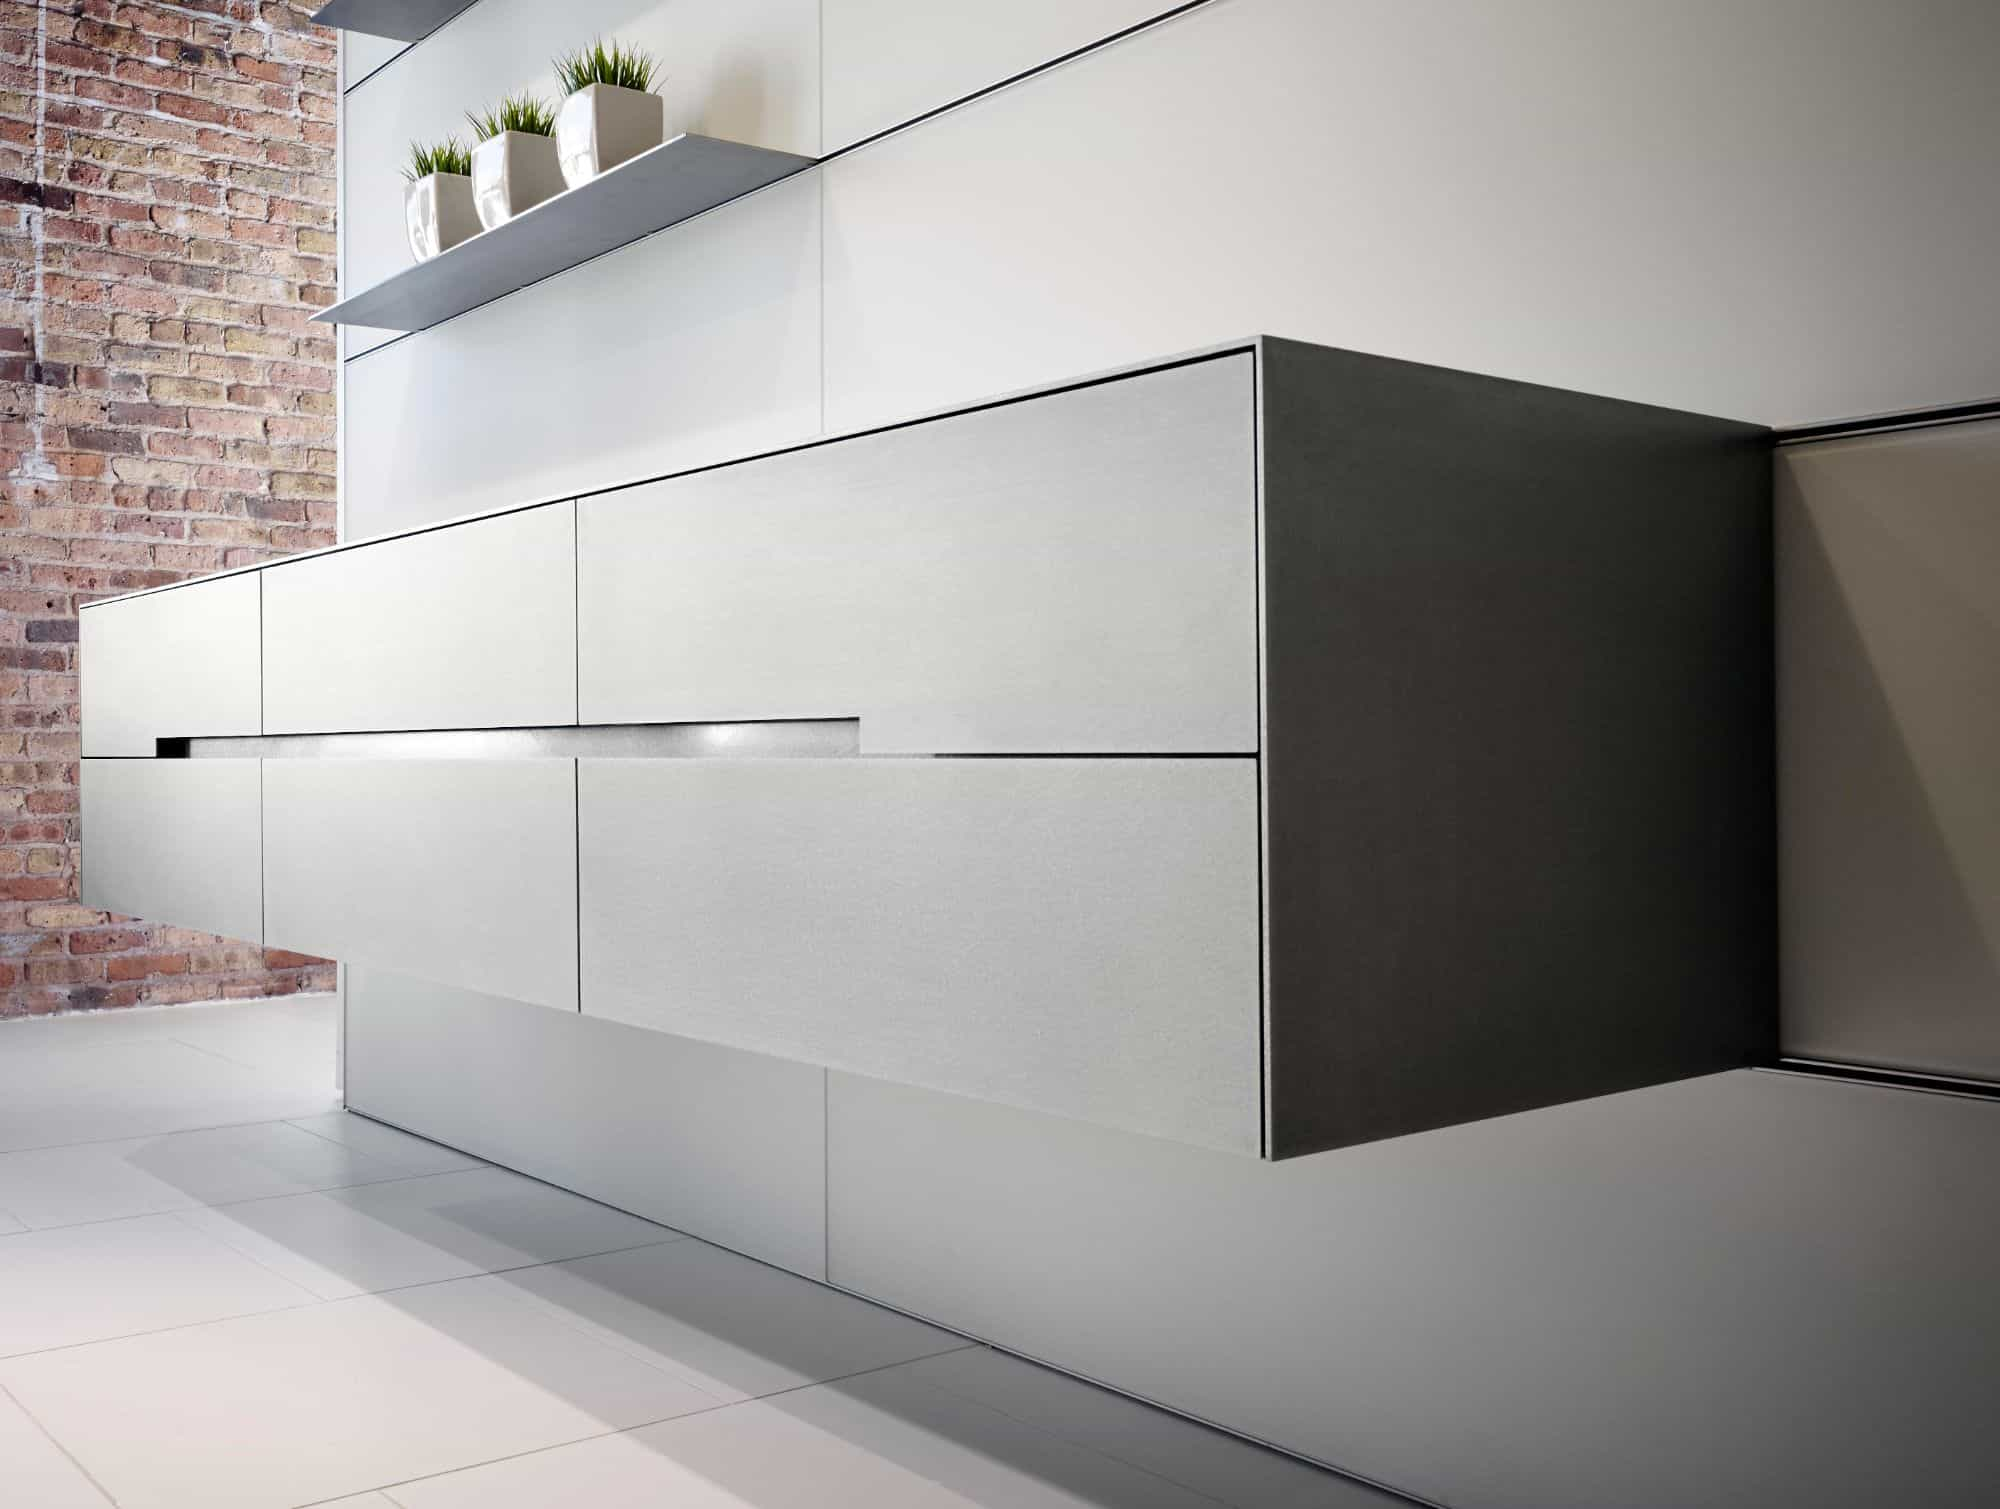 Hermetic Stainless steel surface